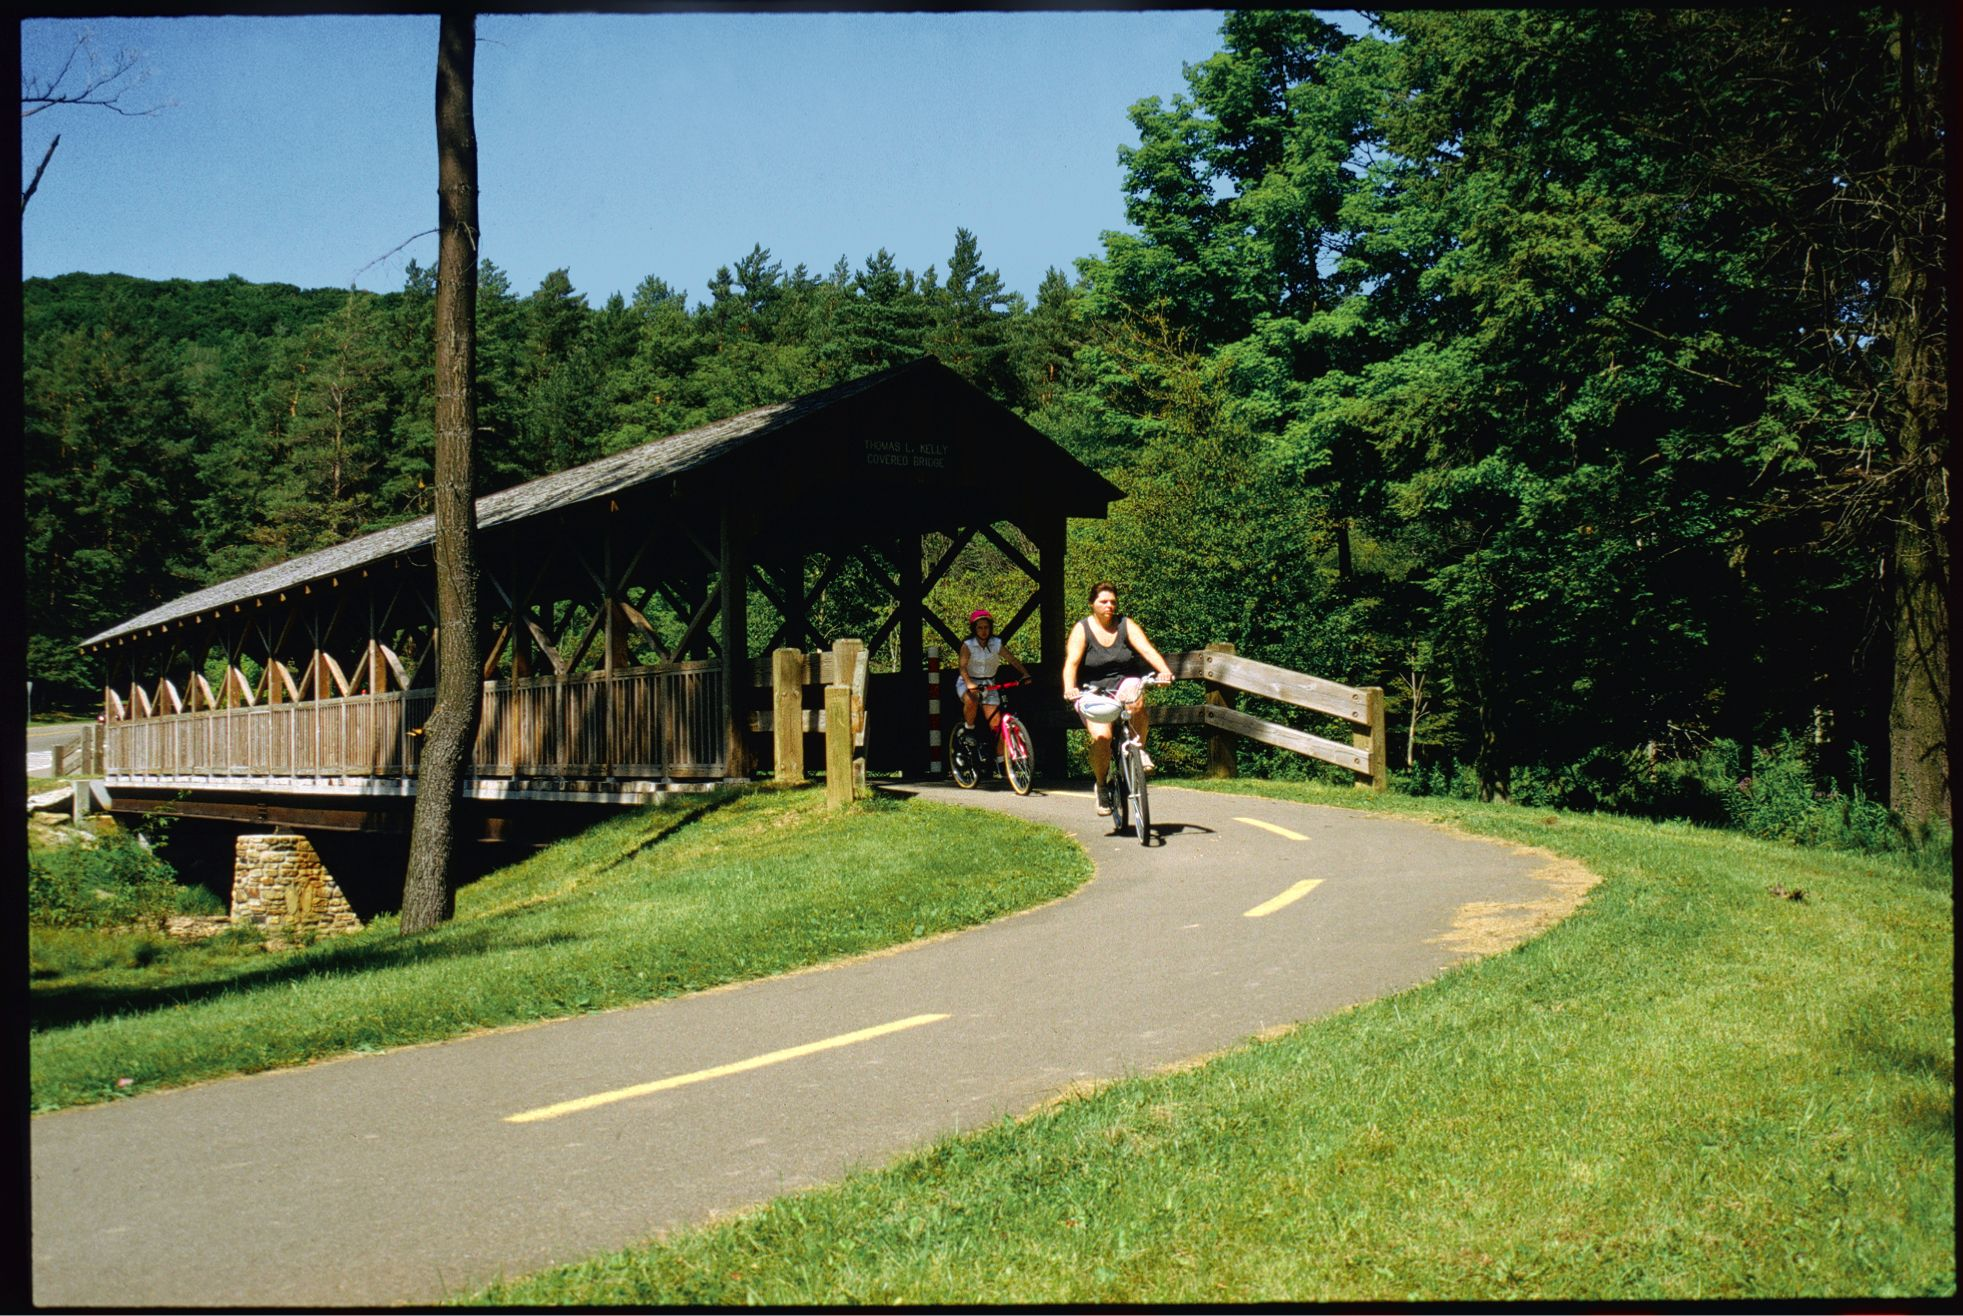 Allegany State Park offers scenic paved trails around Red House Lake or Mountain Biking.  Don't forget the Raccoon Rally!